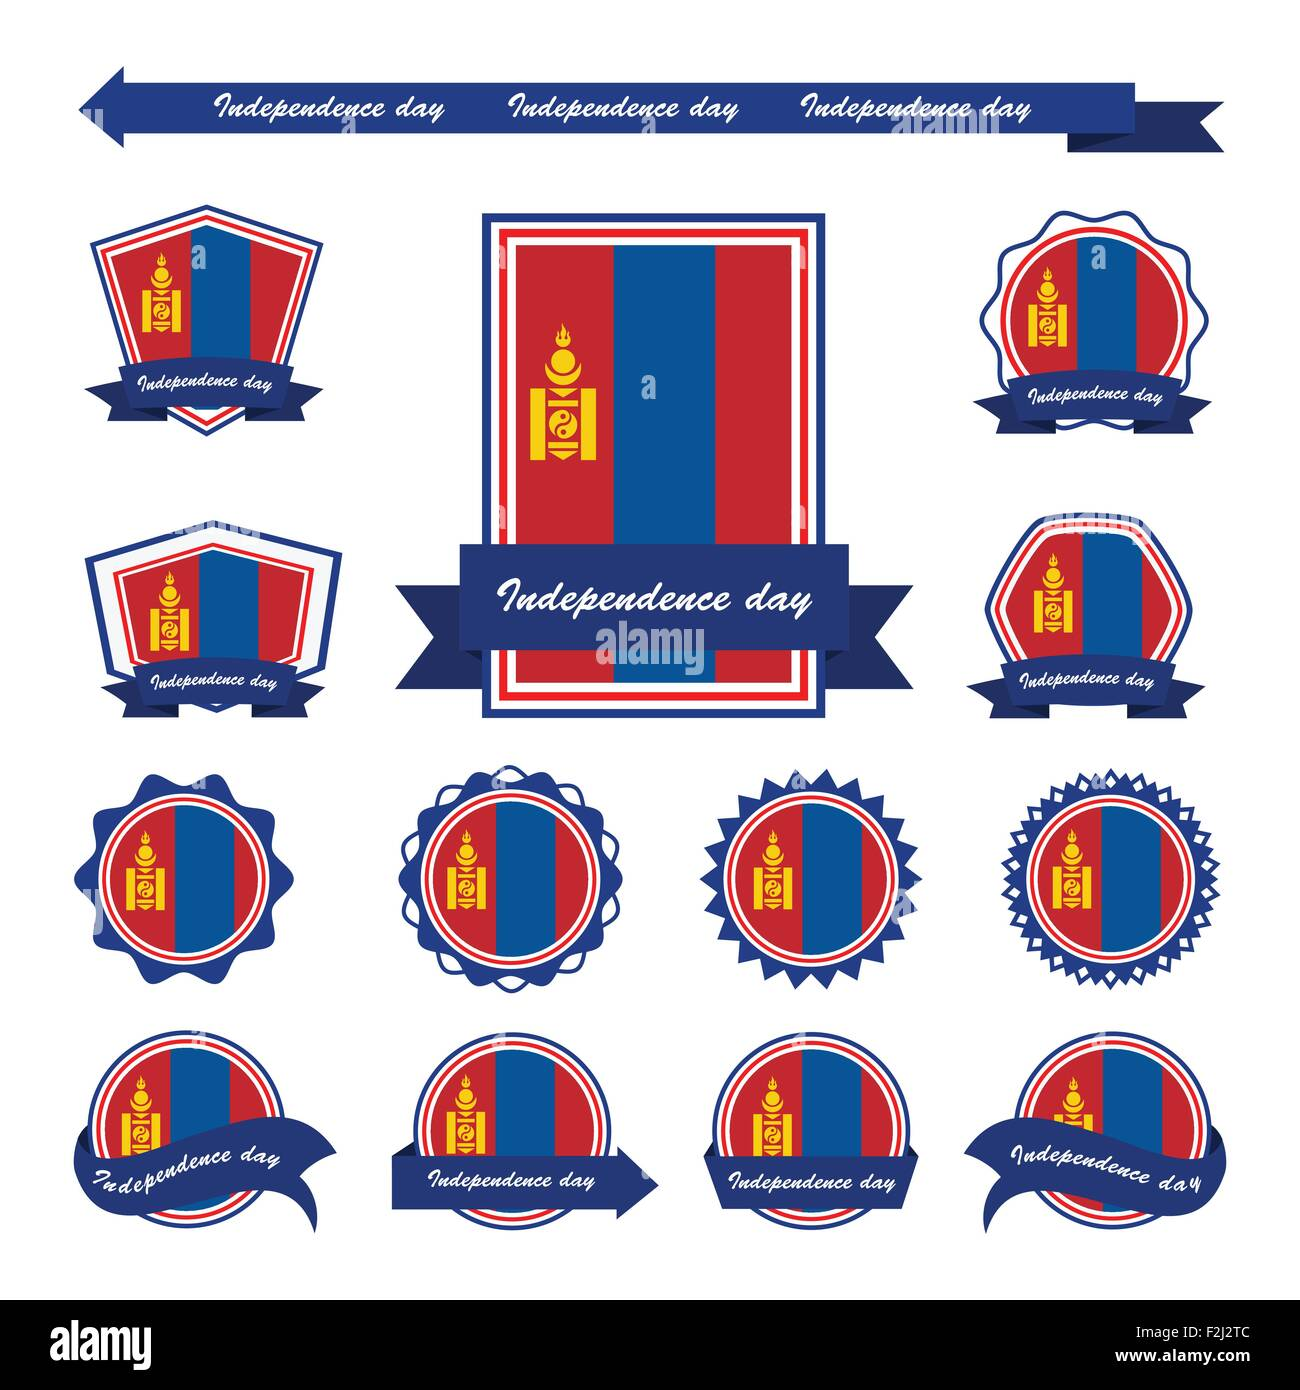 mongolia independence day flags infographic design - Stock Vector